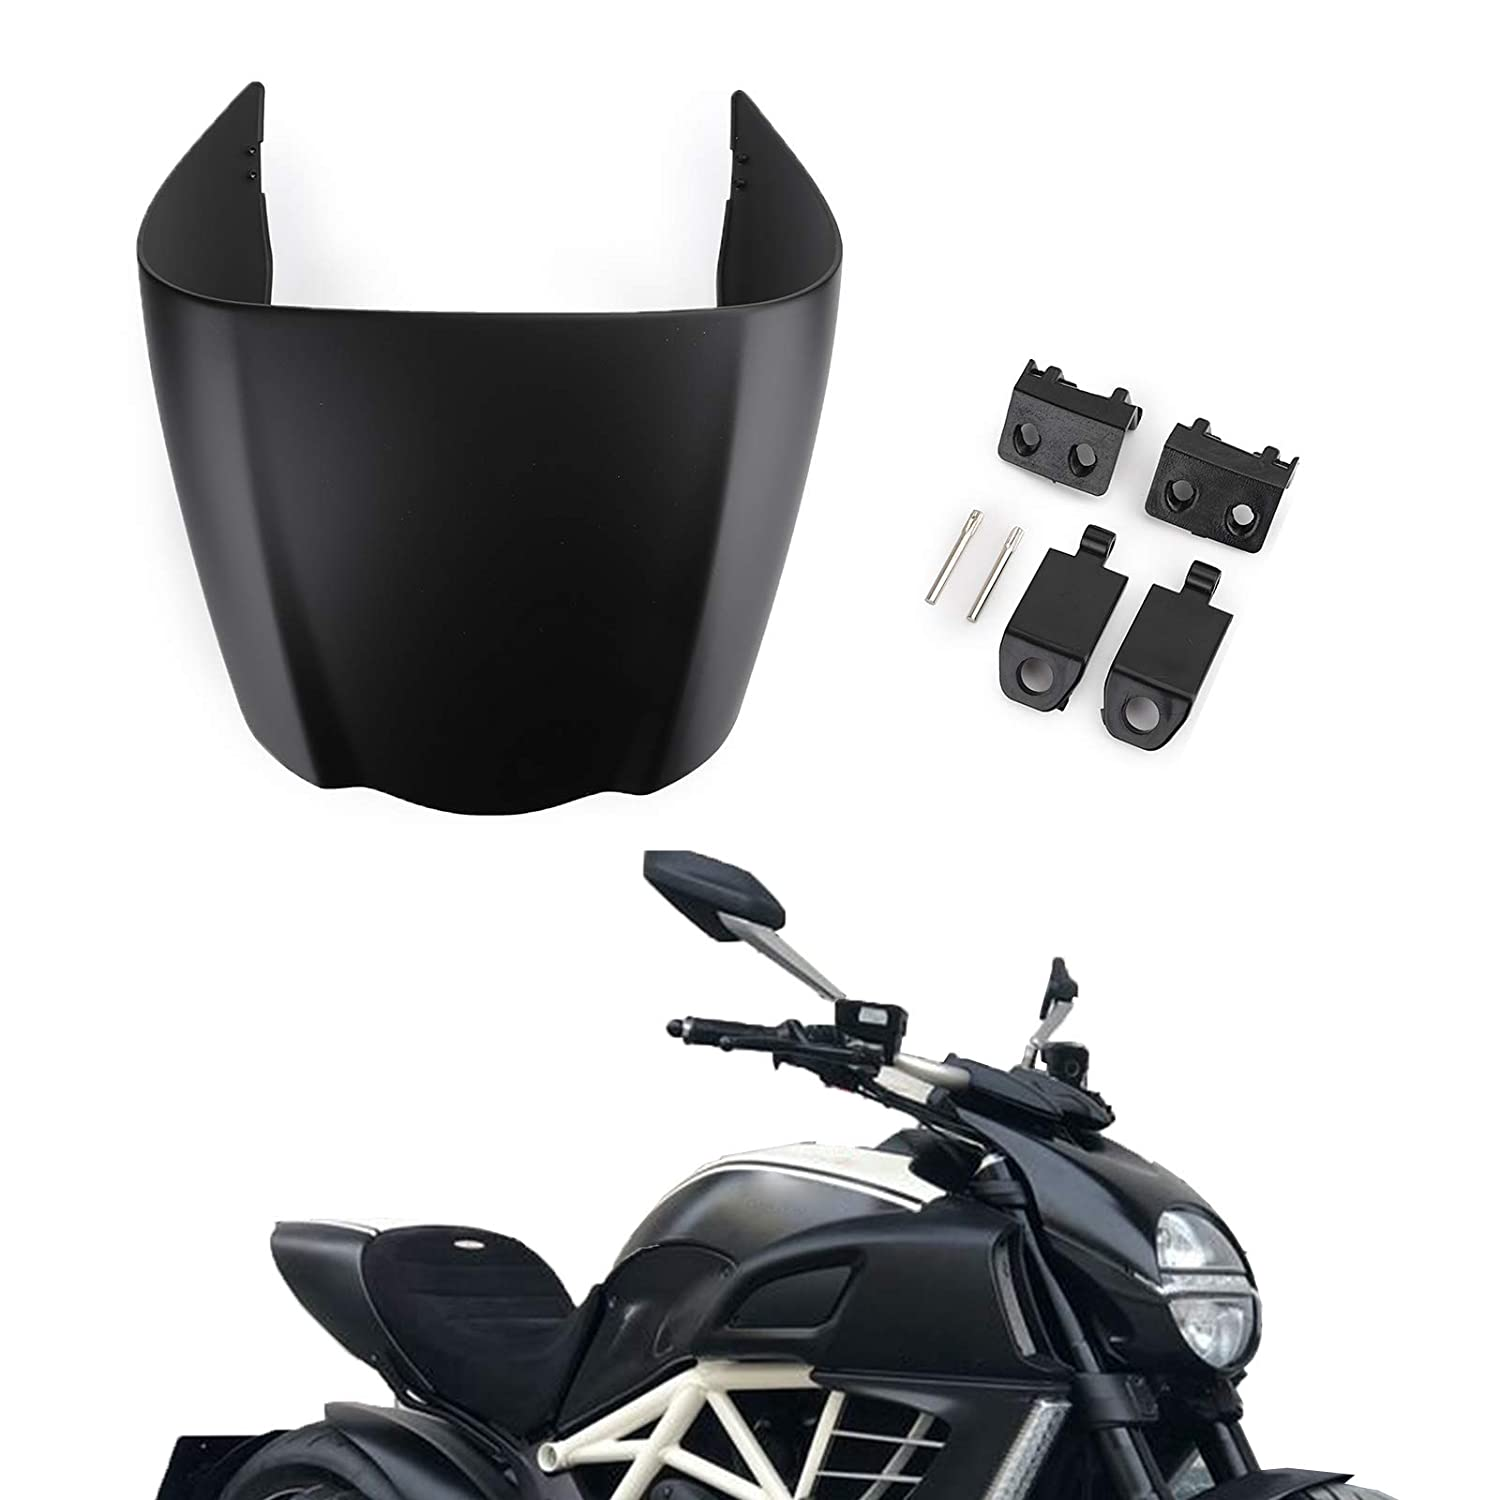 Areyourshop Rear Seat Solo Cowl Fairing Cover for DUCATI 2011-2013 DIAVEL 1200